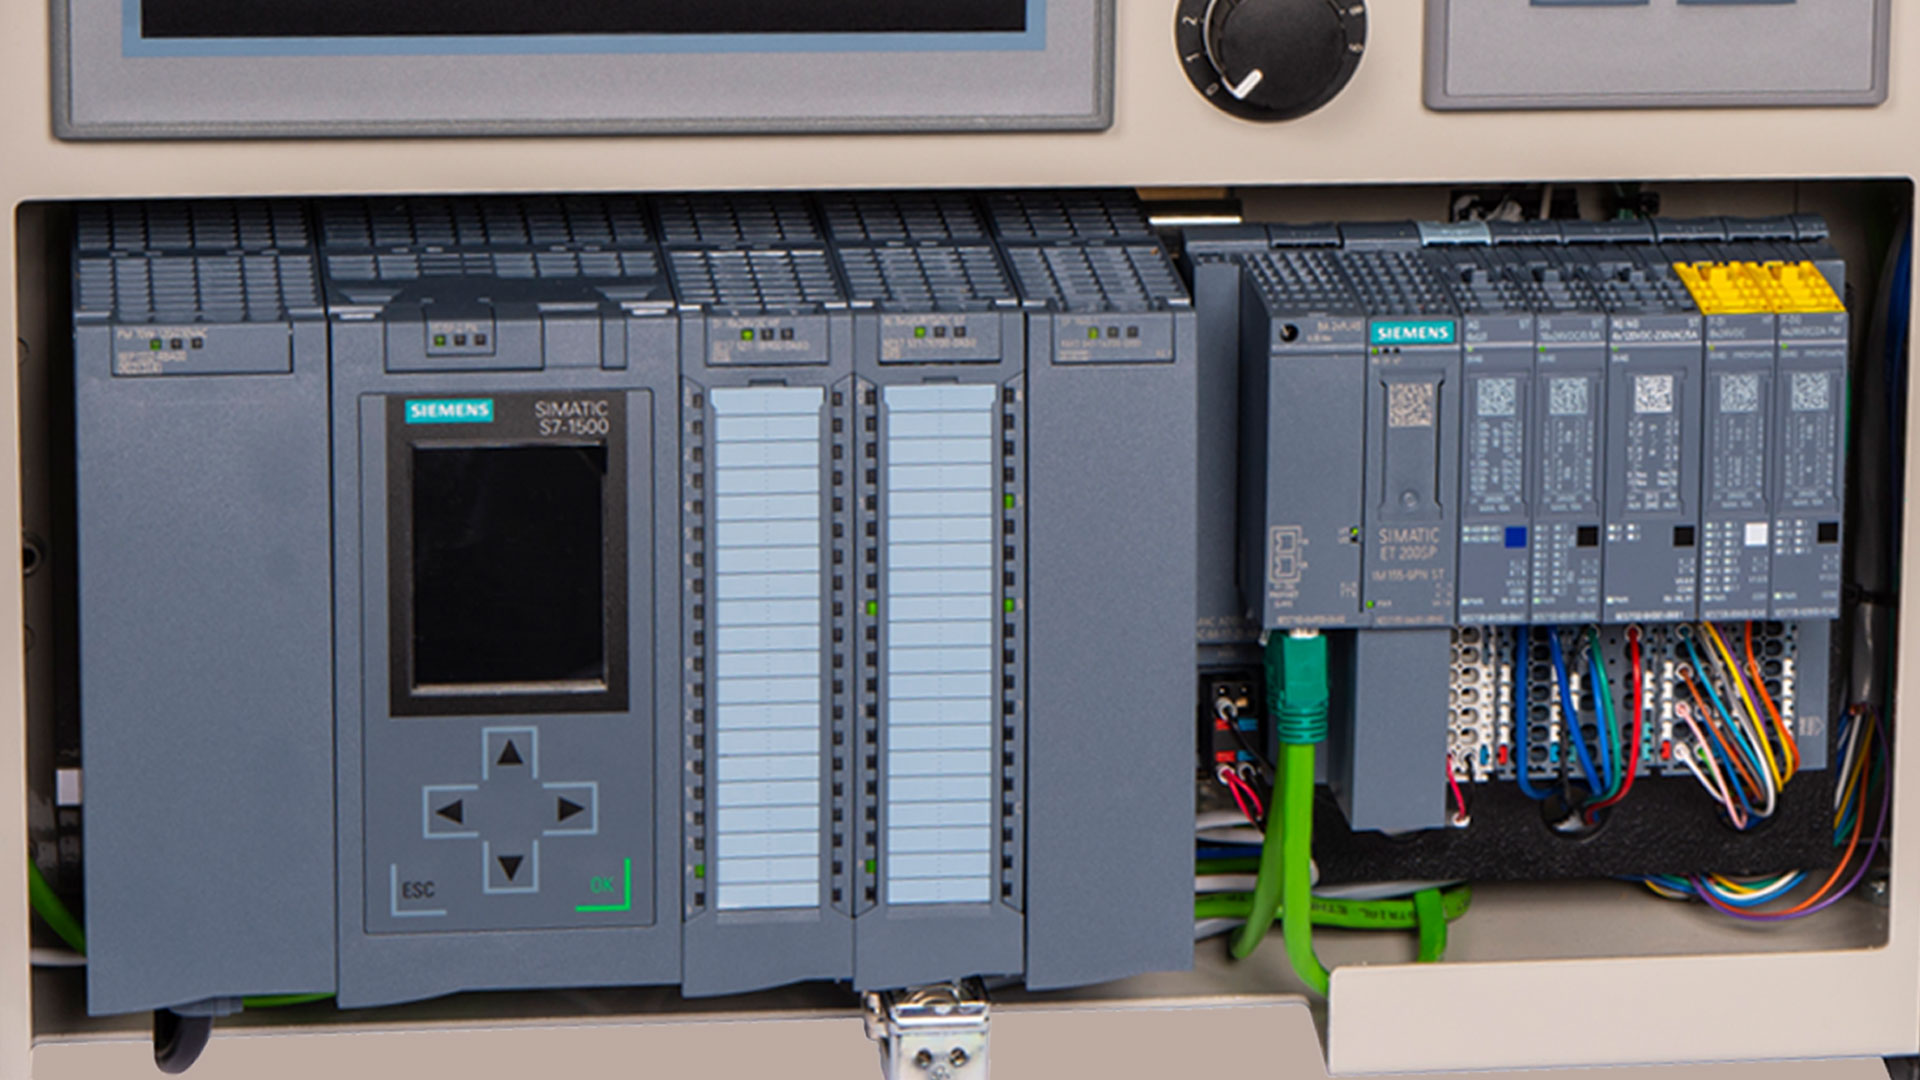 Creating your first Siemens S7-1500 Program (video) - The